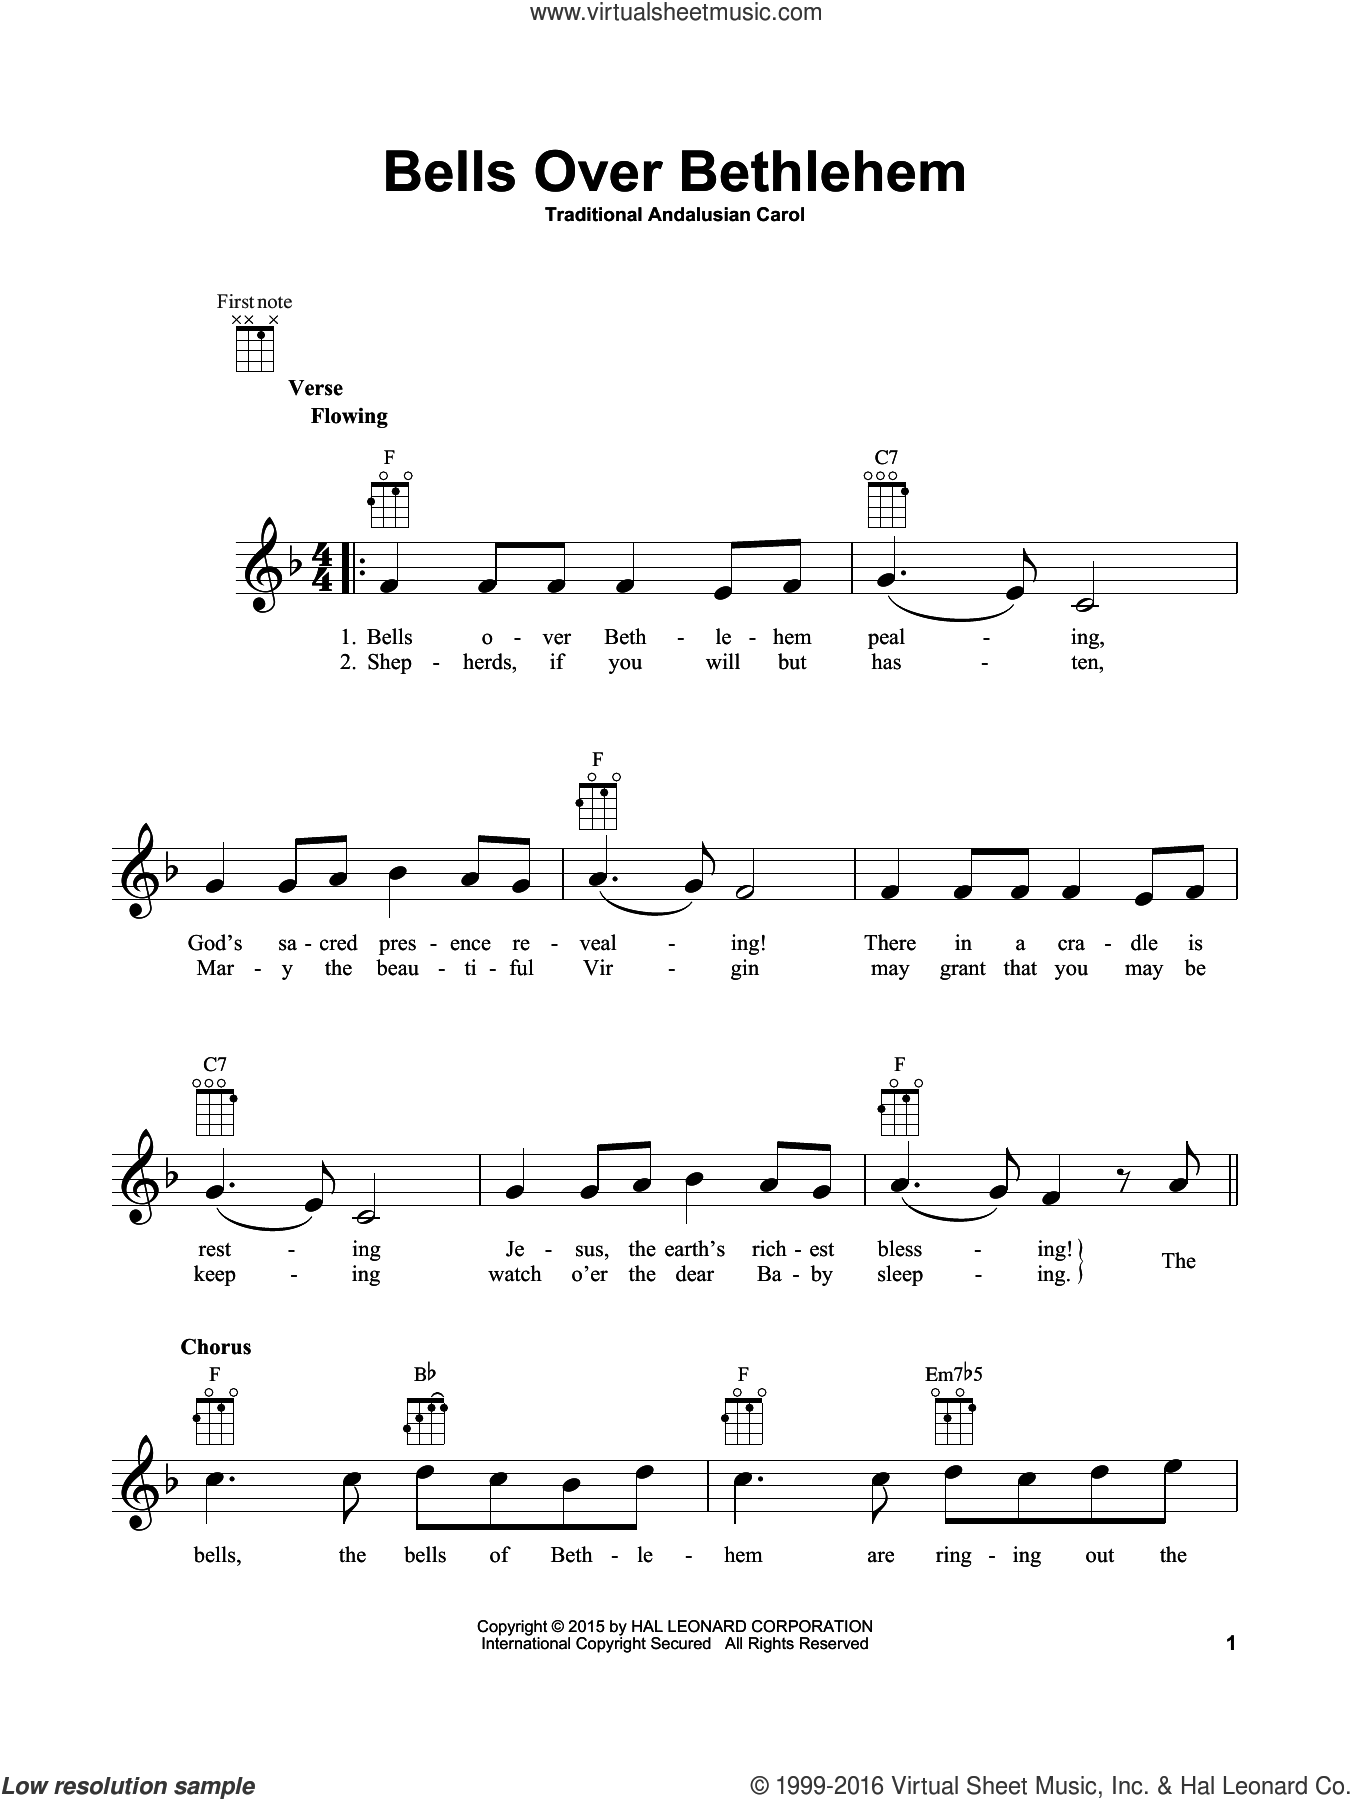 Bells Over Bethlehem sheet music for ukulele by Traditional Andalusian Carol, intermediate skill level